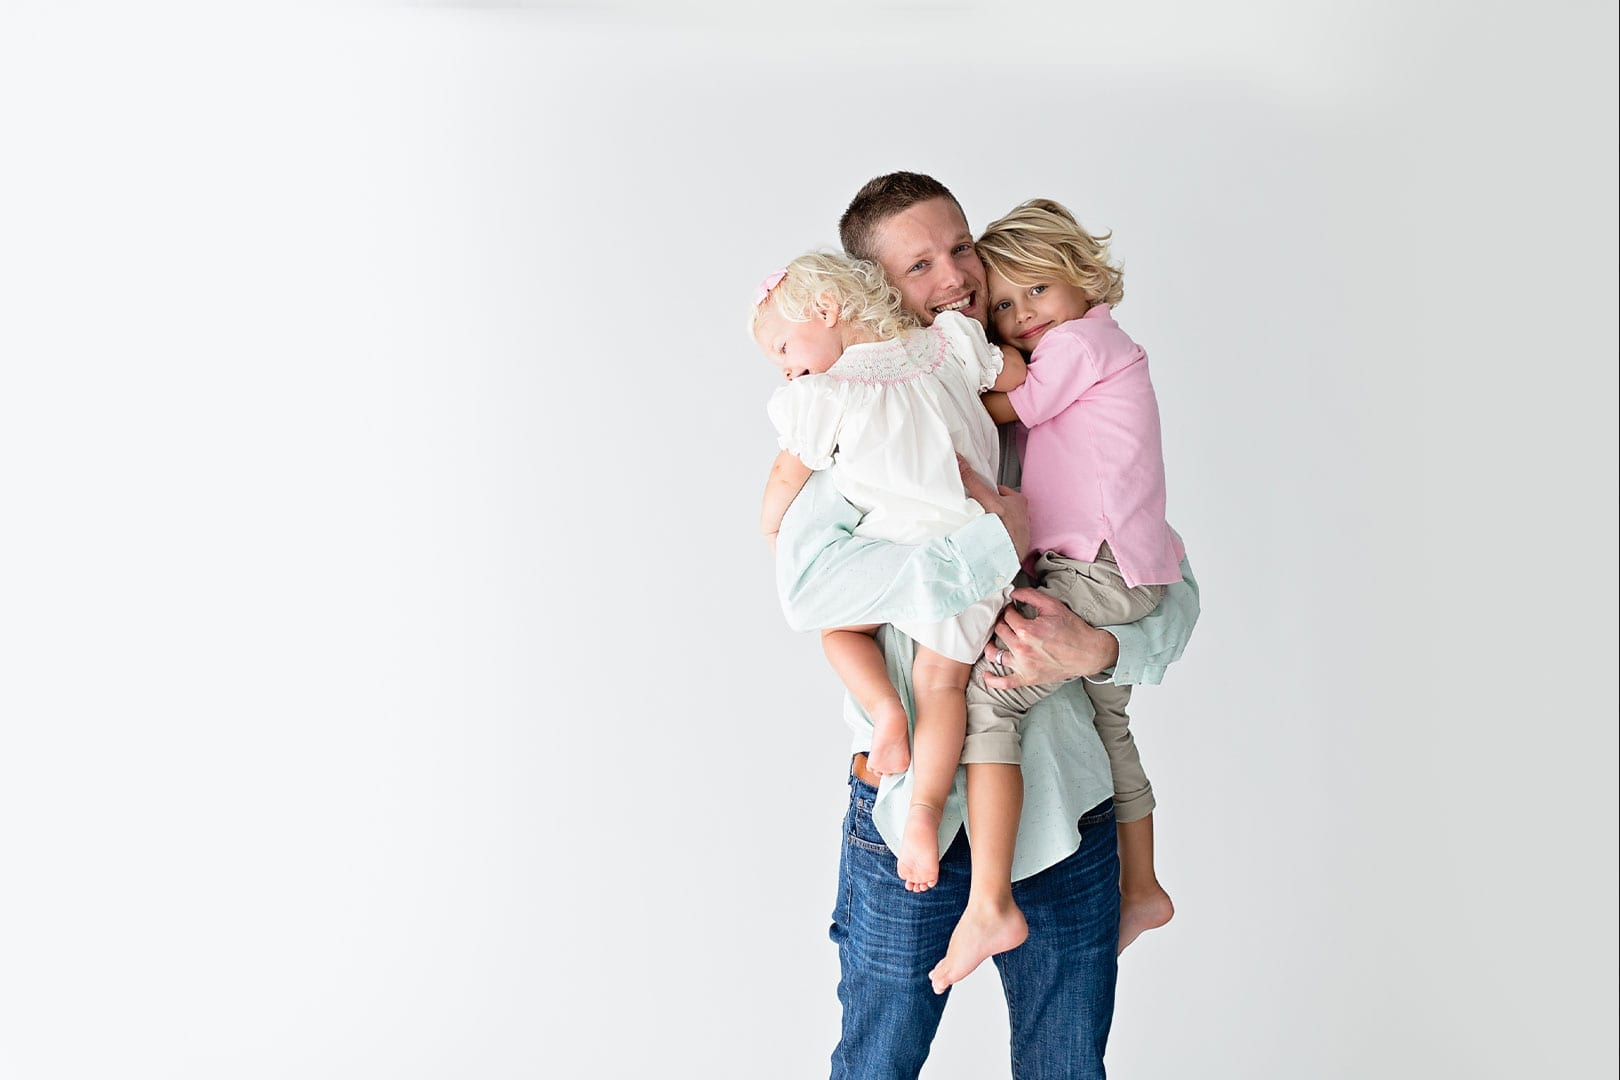 Man carrying the two children